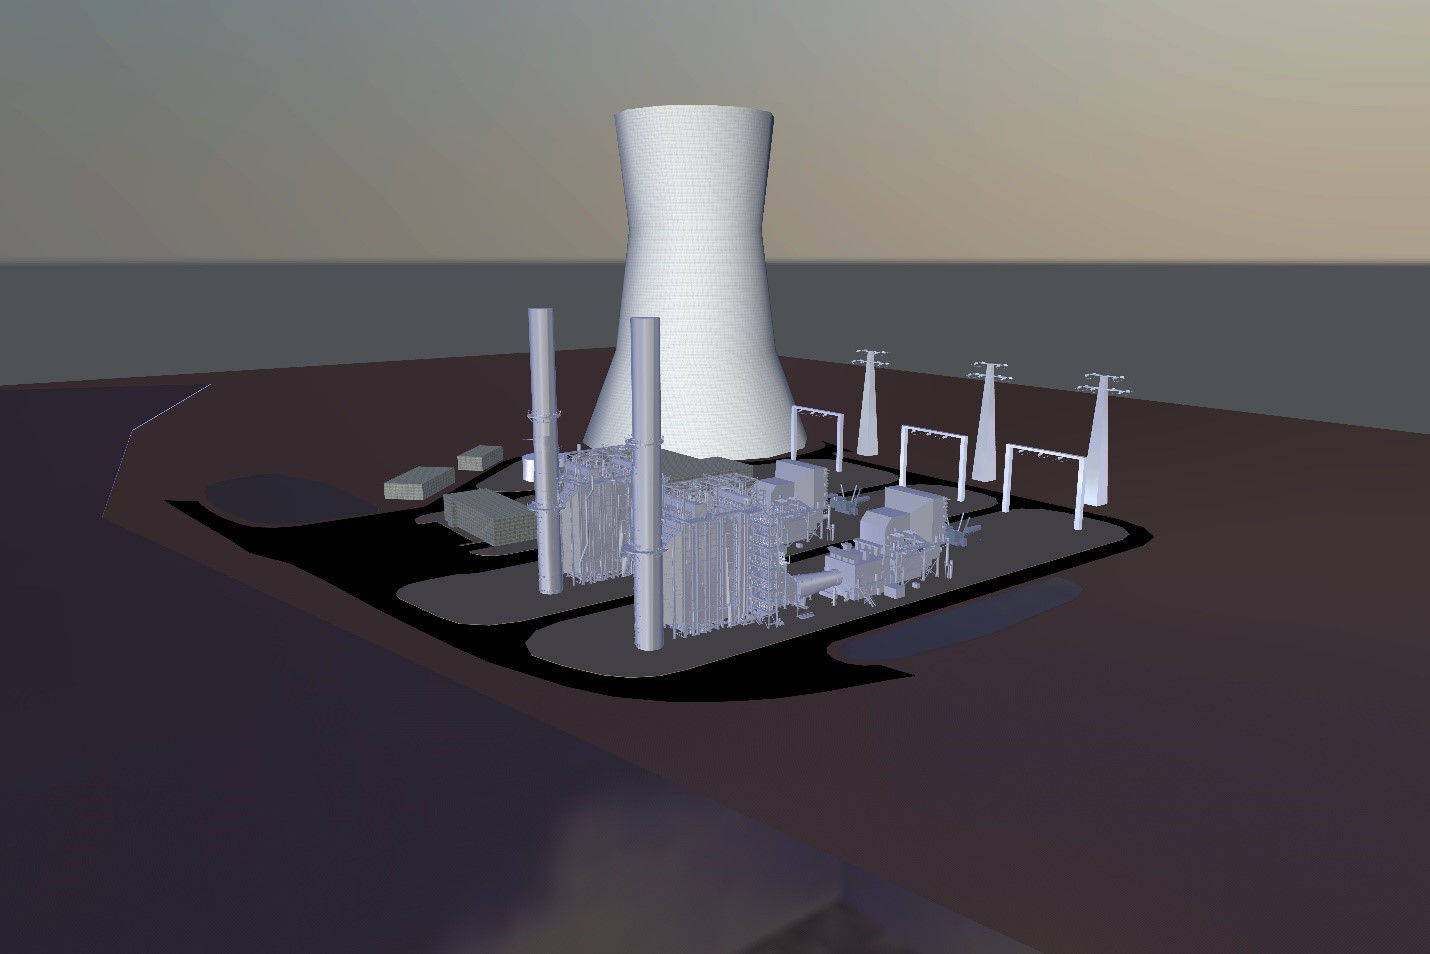 1,000 MW Project Rendering